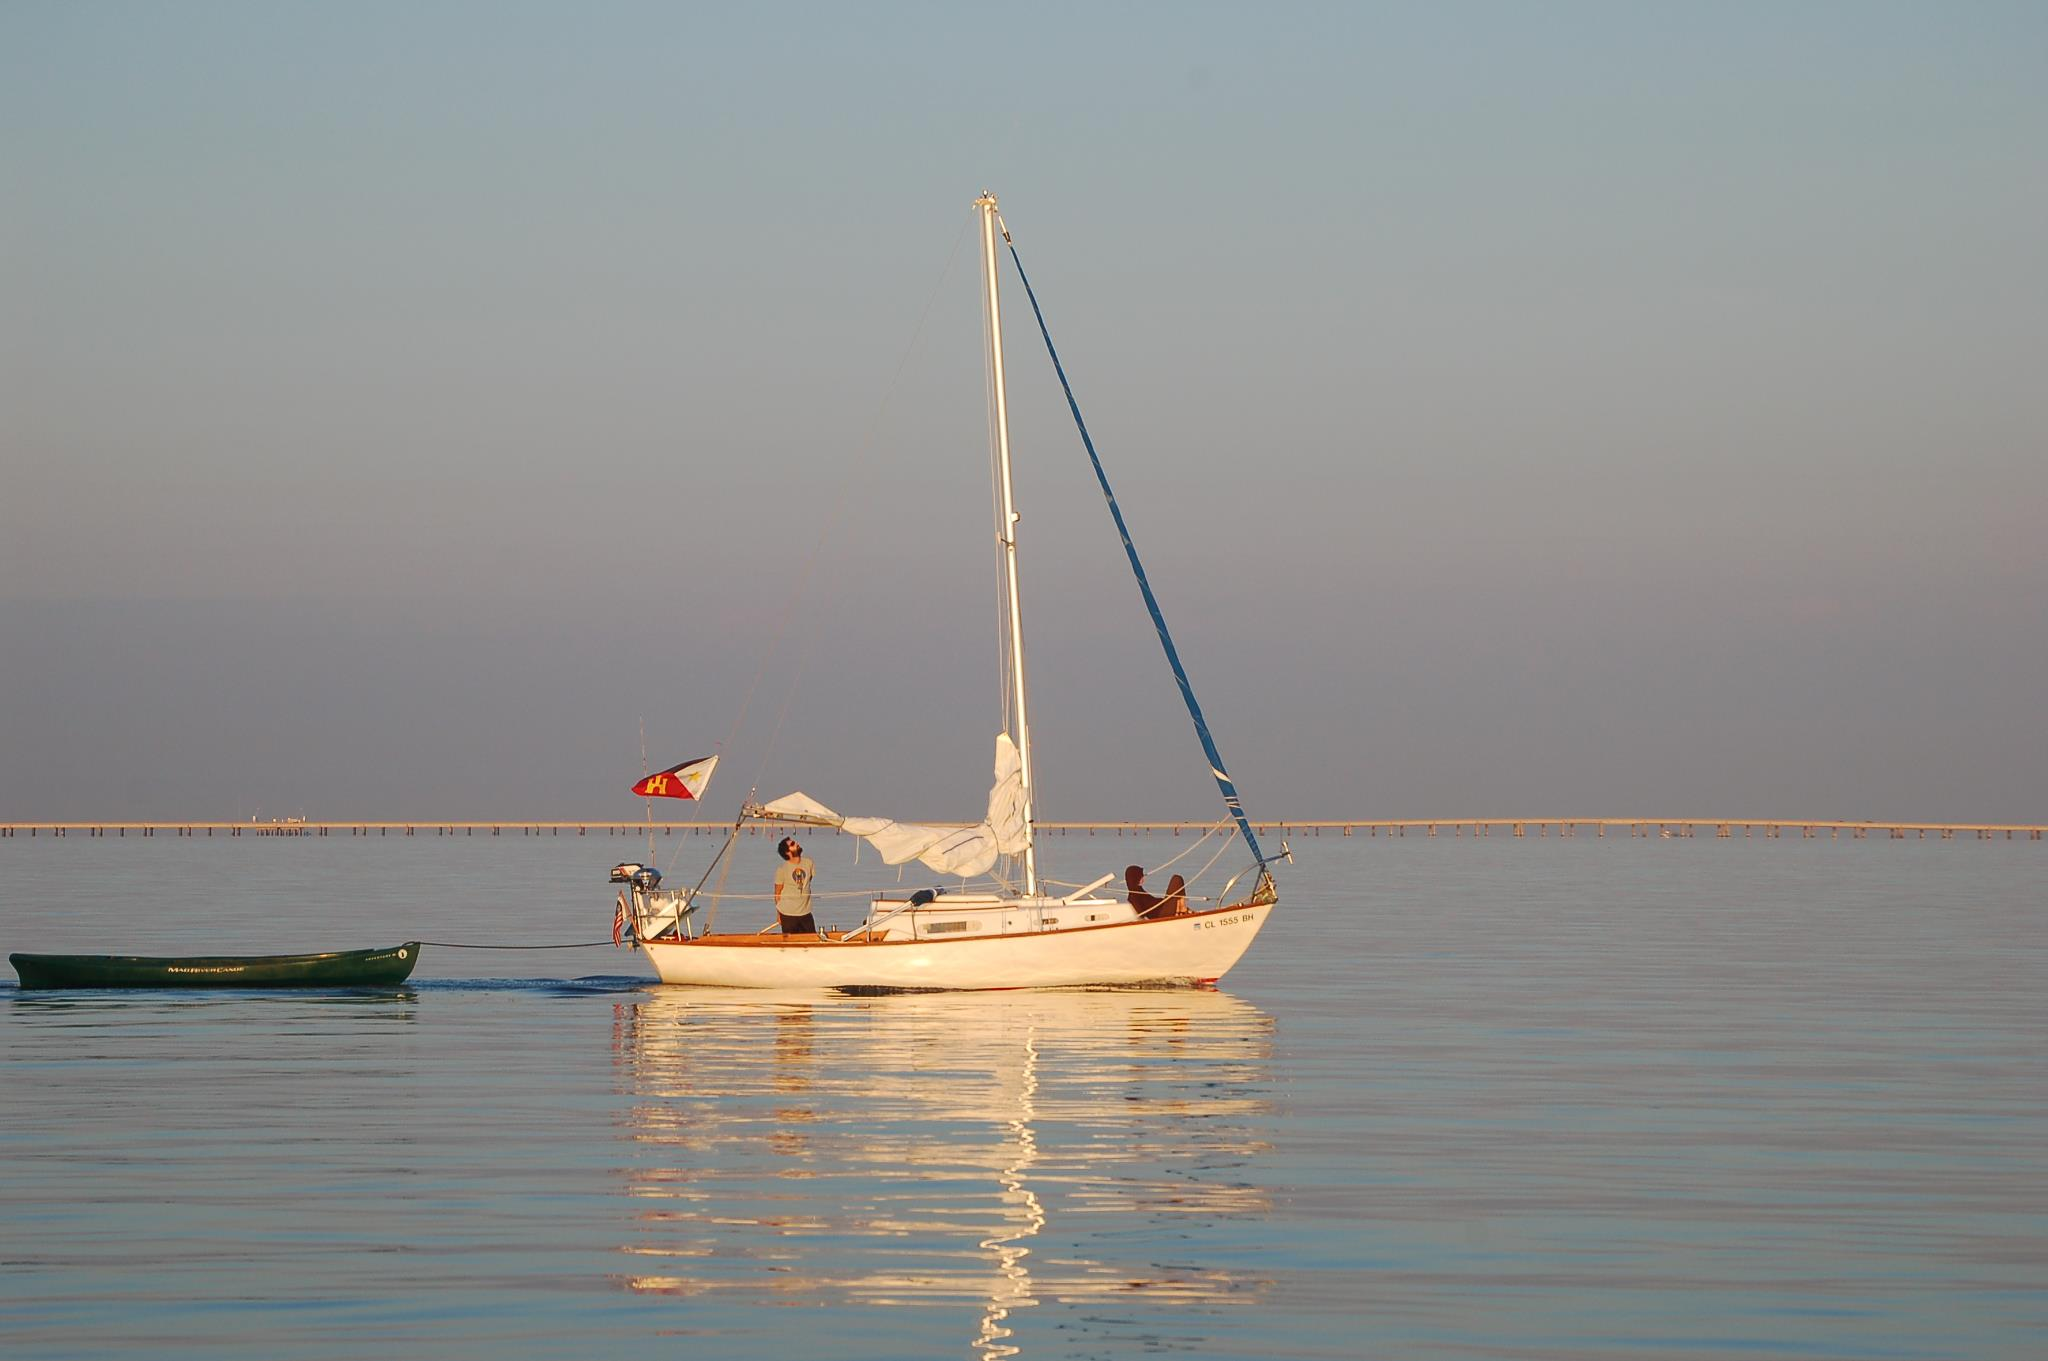 Cape Dory 25 gallery image with filename: capedory25-papillion-windlessmorning2.jpg